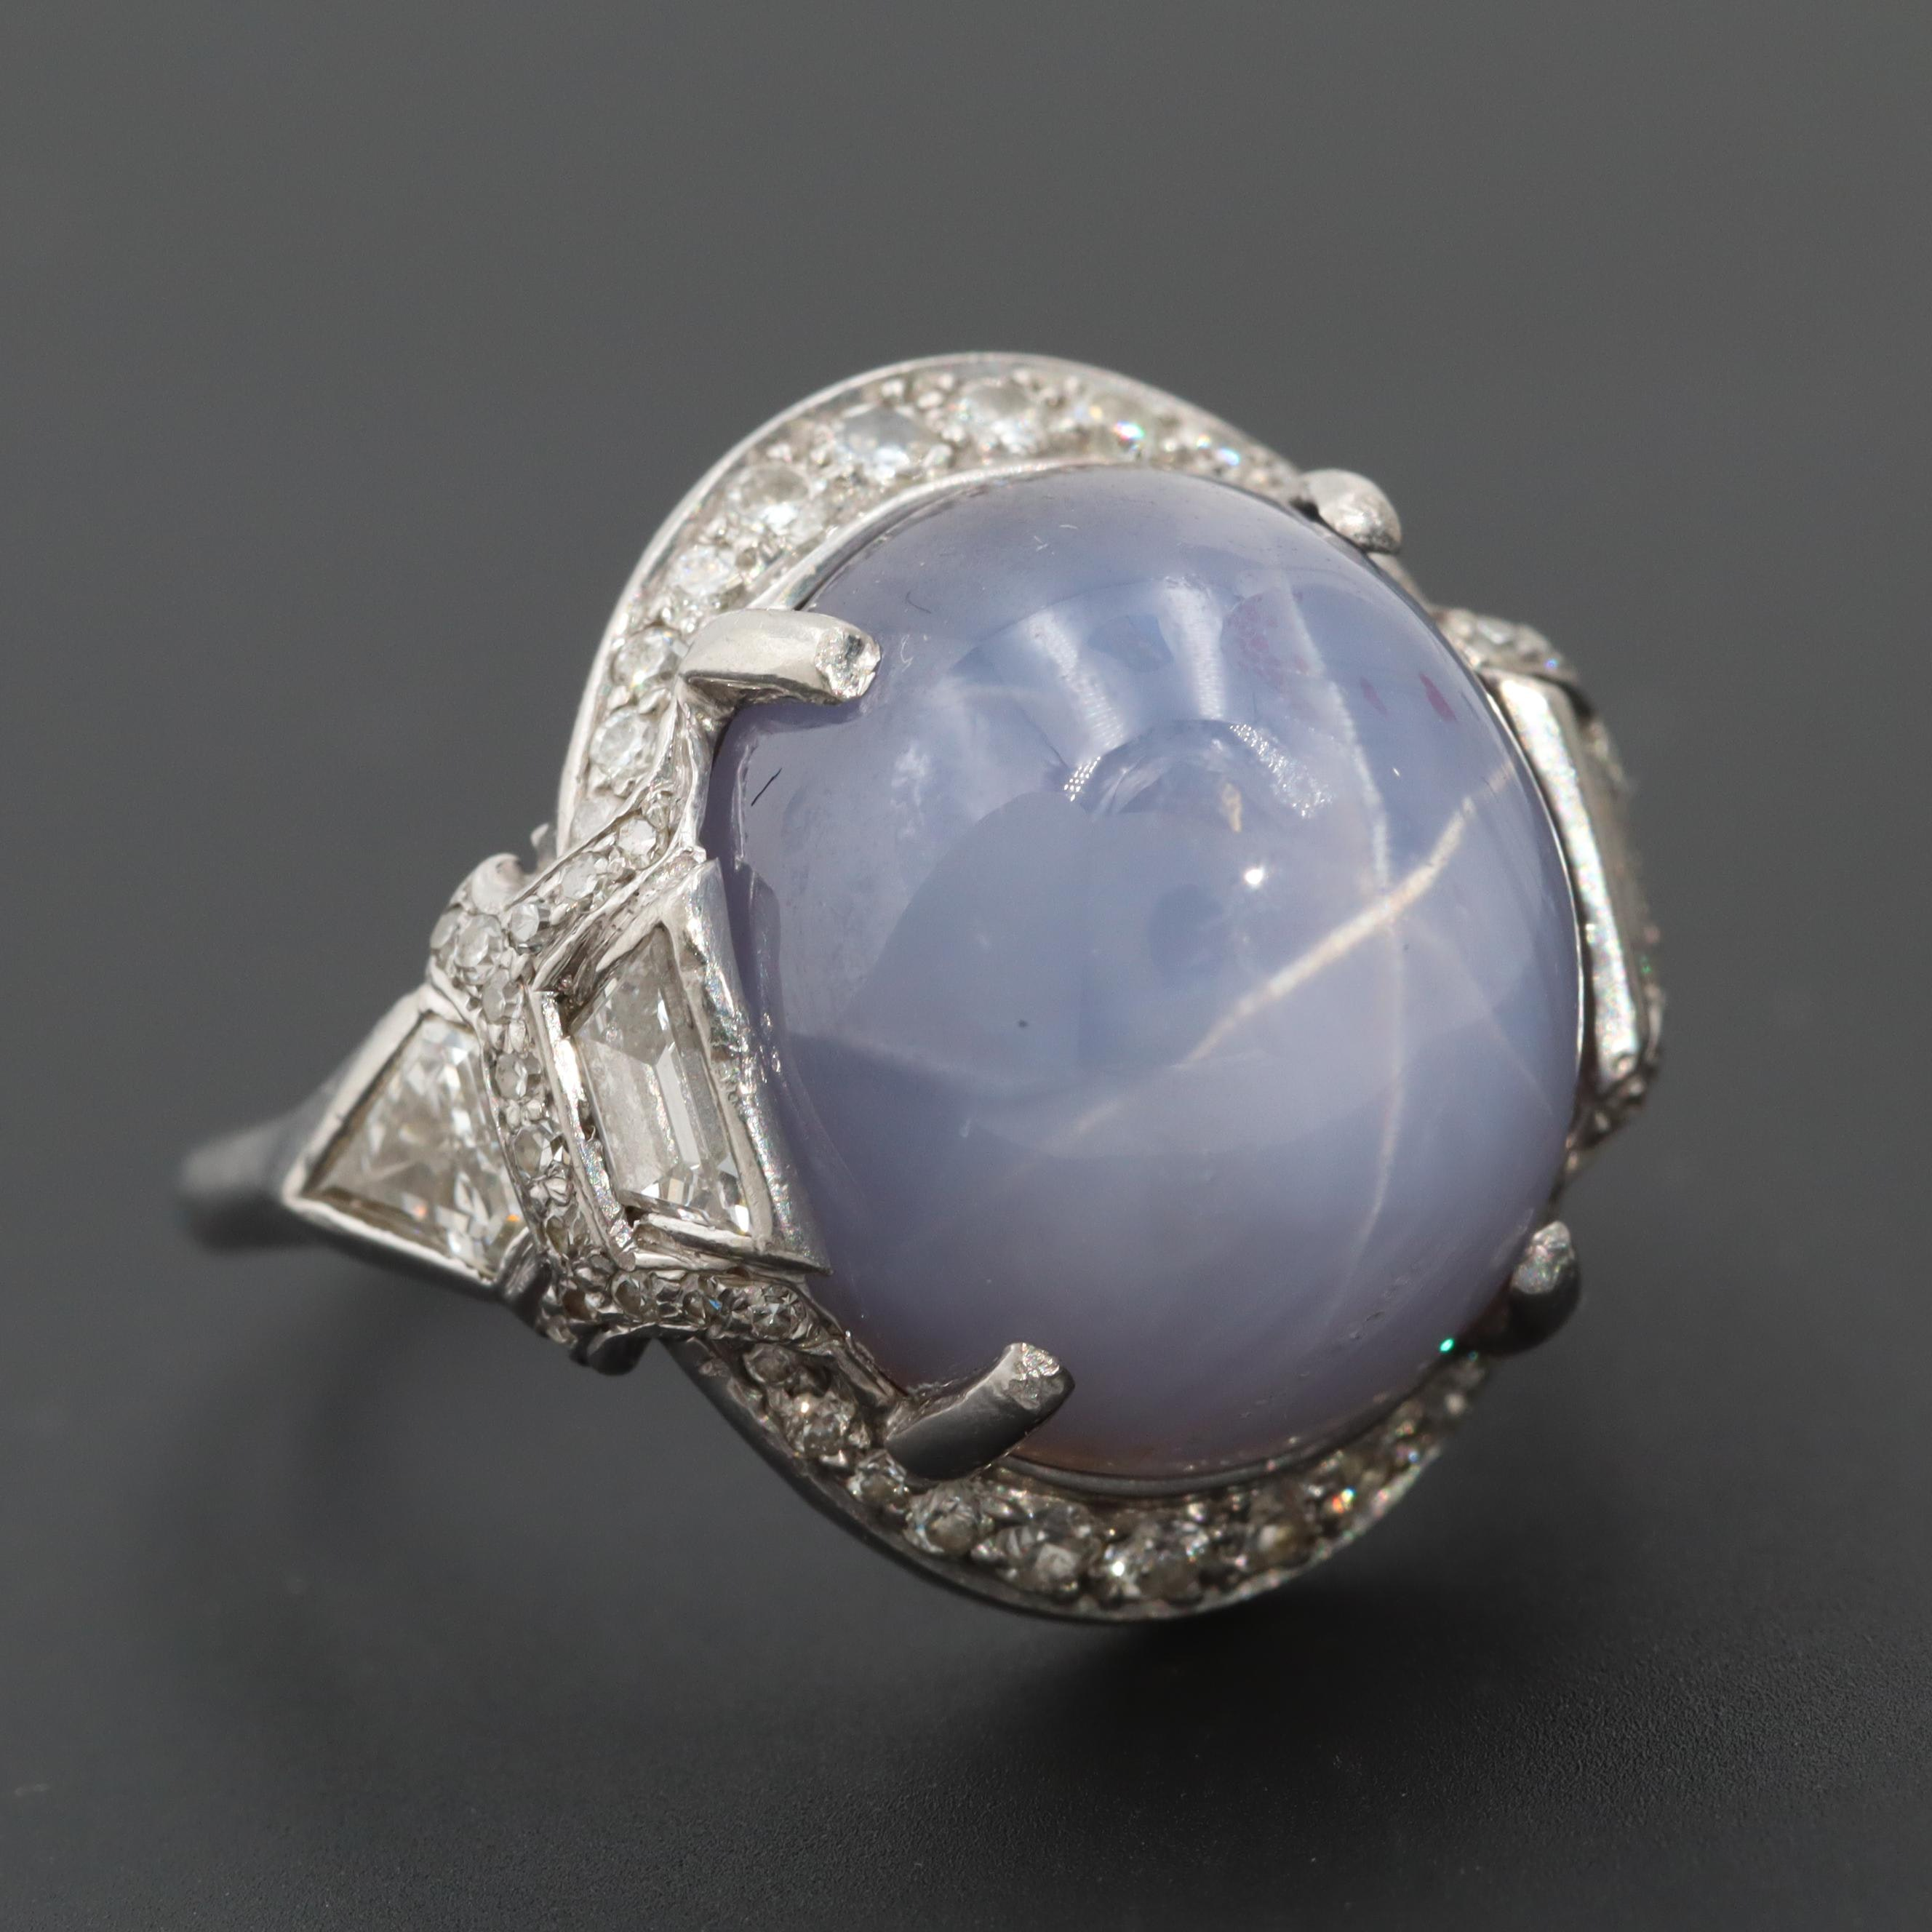 Art Deco Platinum 21.55 CT Star Sapphire and 1.14 CTW Diamond Ring